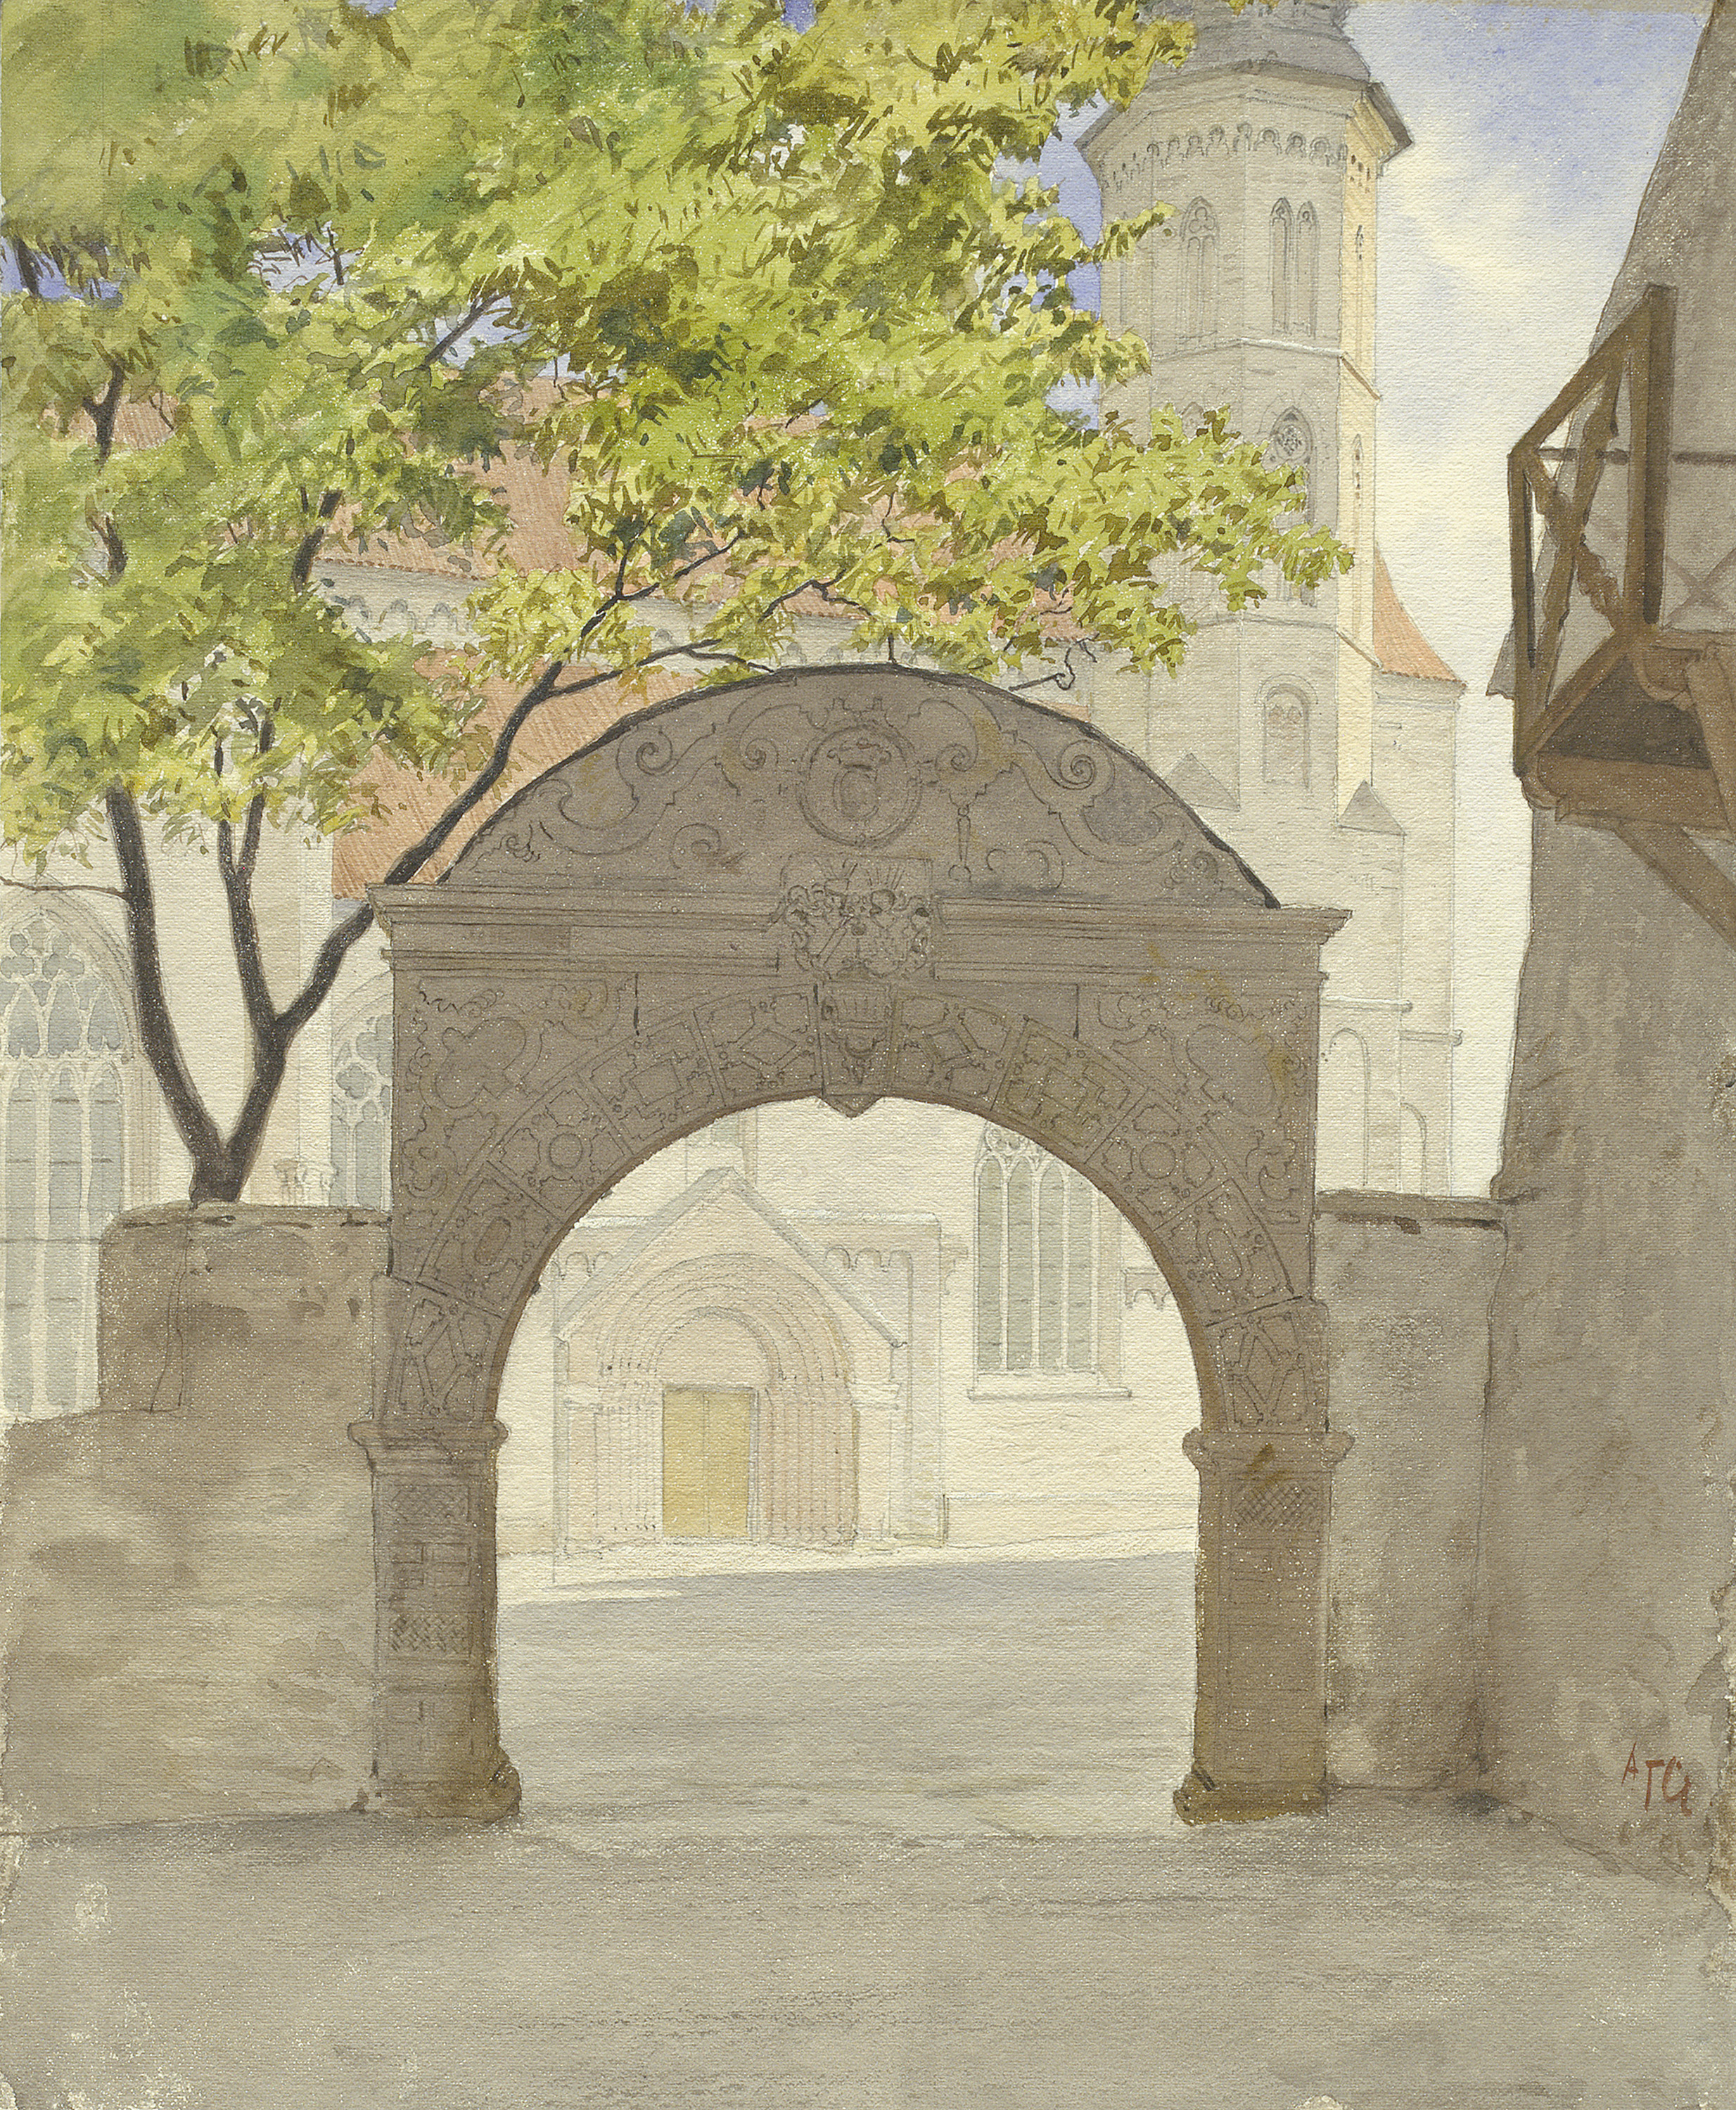 Gateway to Visby Cathedral's churchyard, Gotland, Sweden